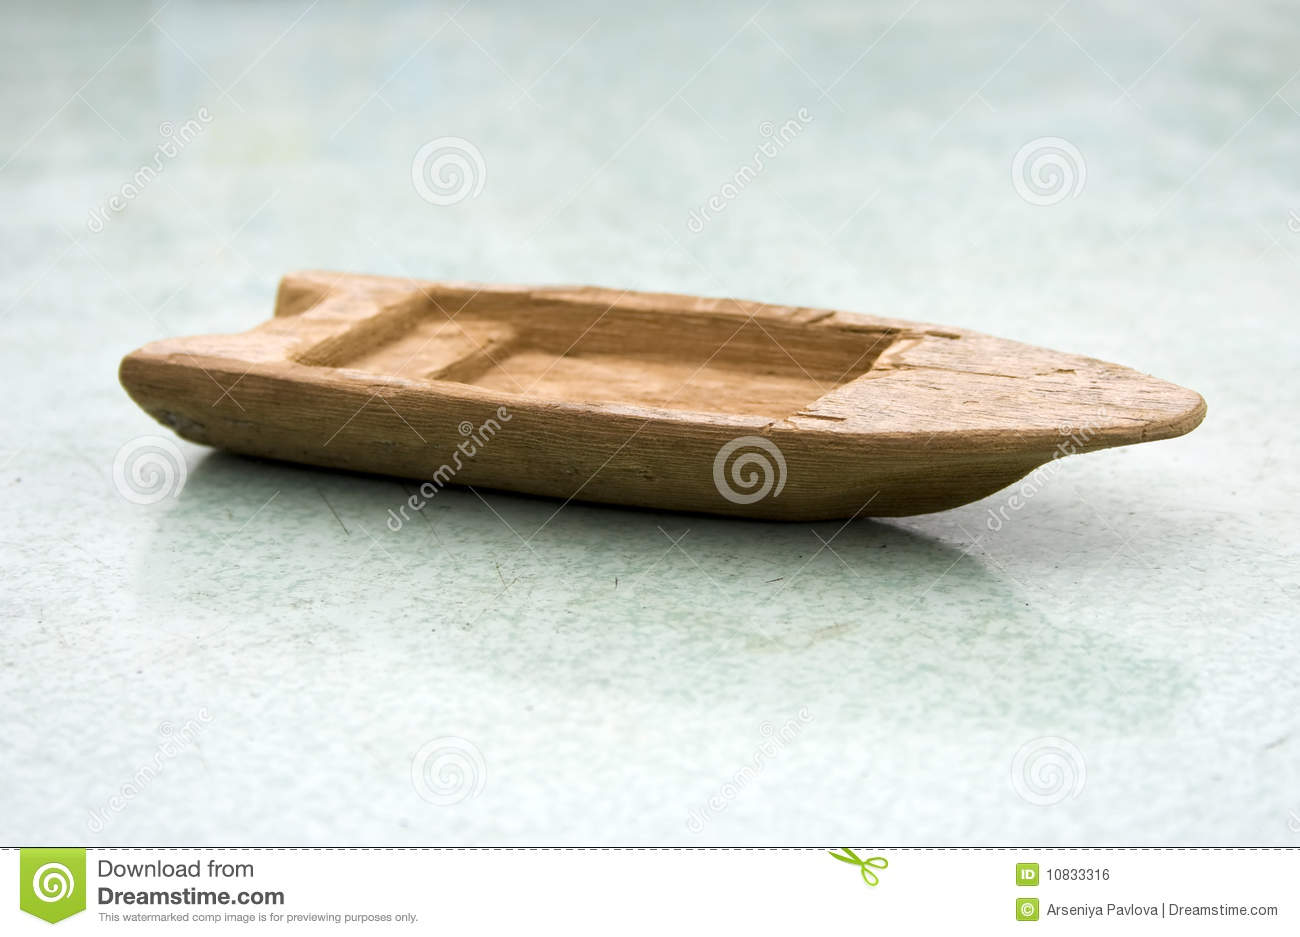 Old Wooden Toy Boat Royalty Free Stock Image - Image: 10833316